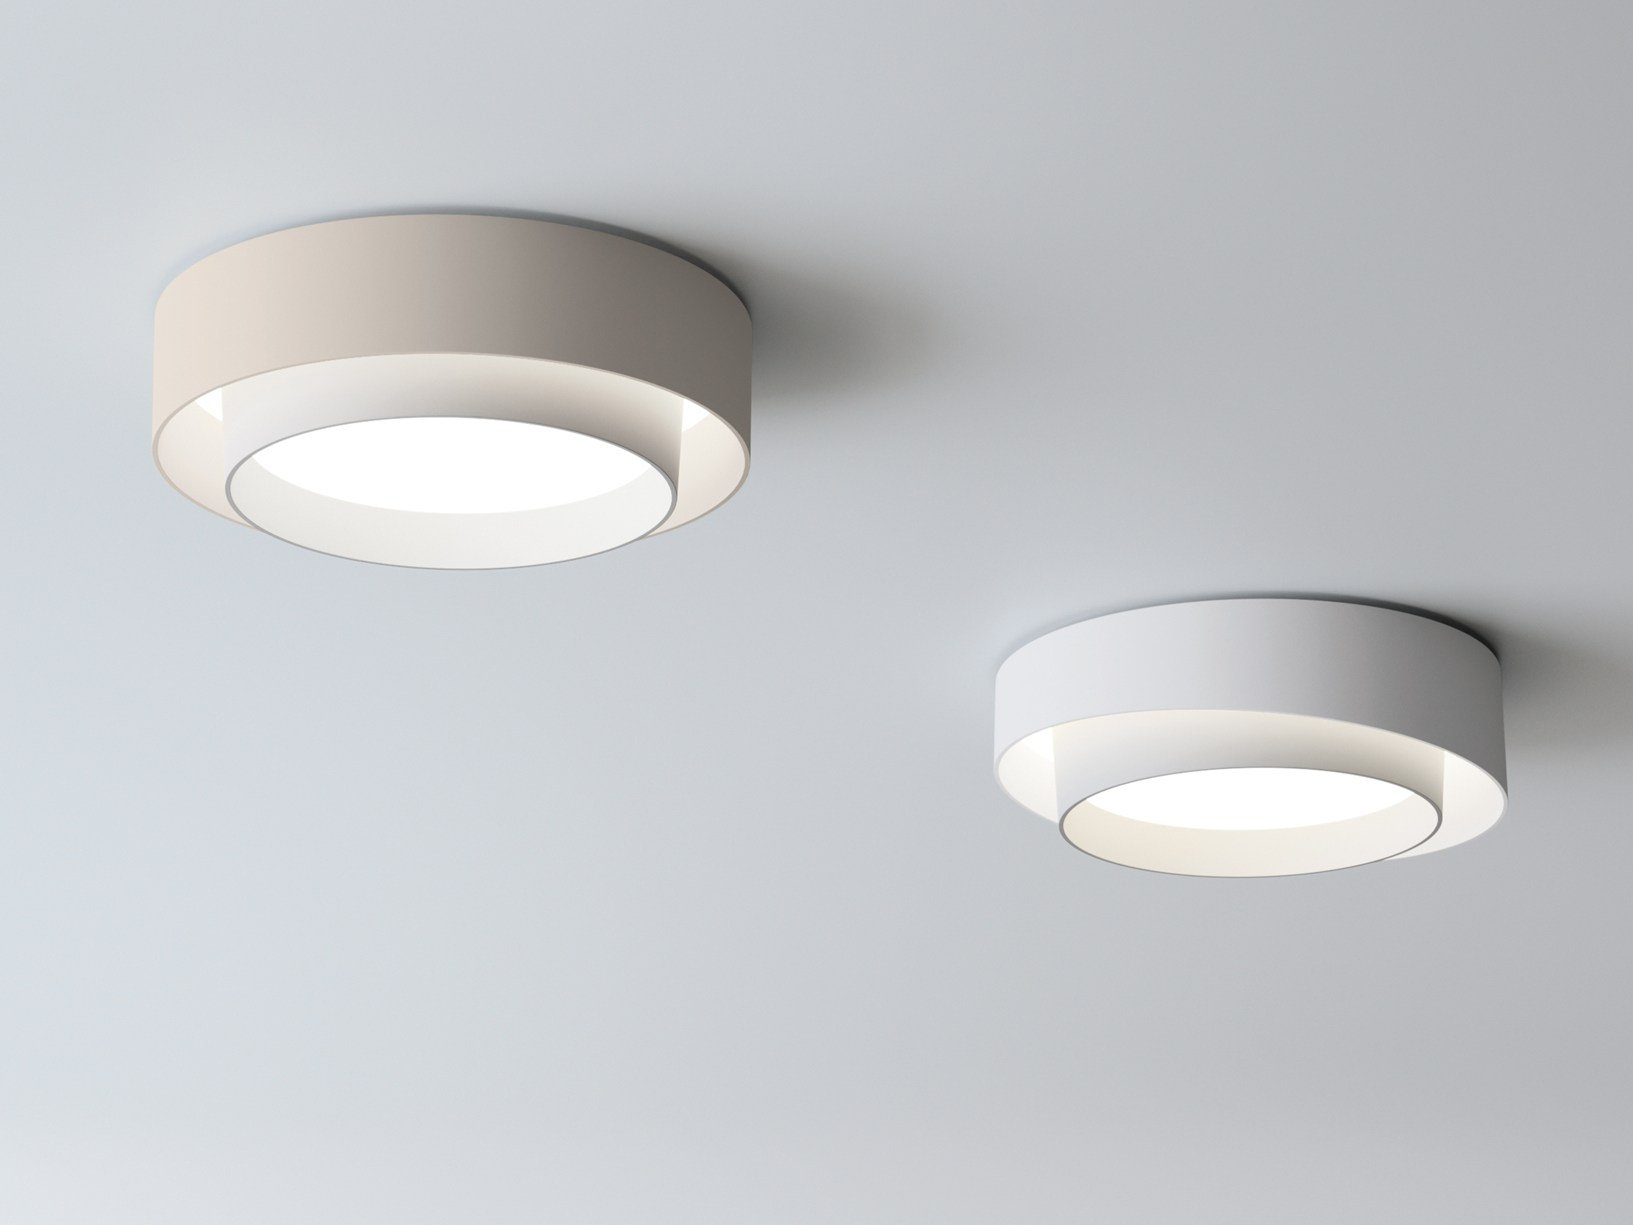 Centric by Ramos & Bassols for Vibia